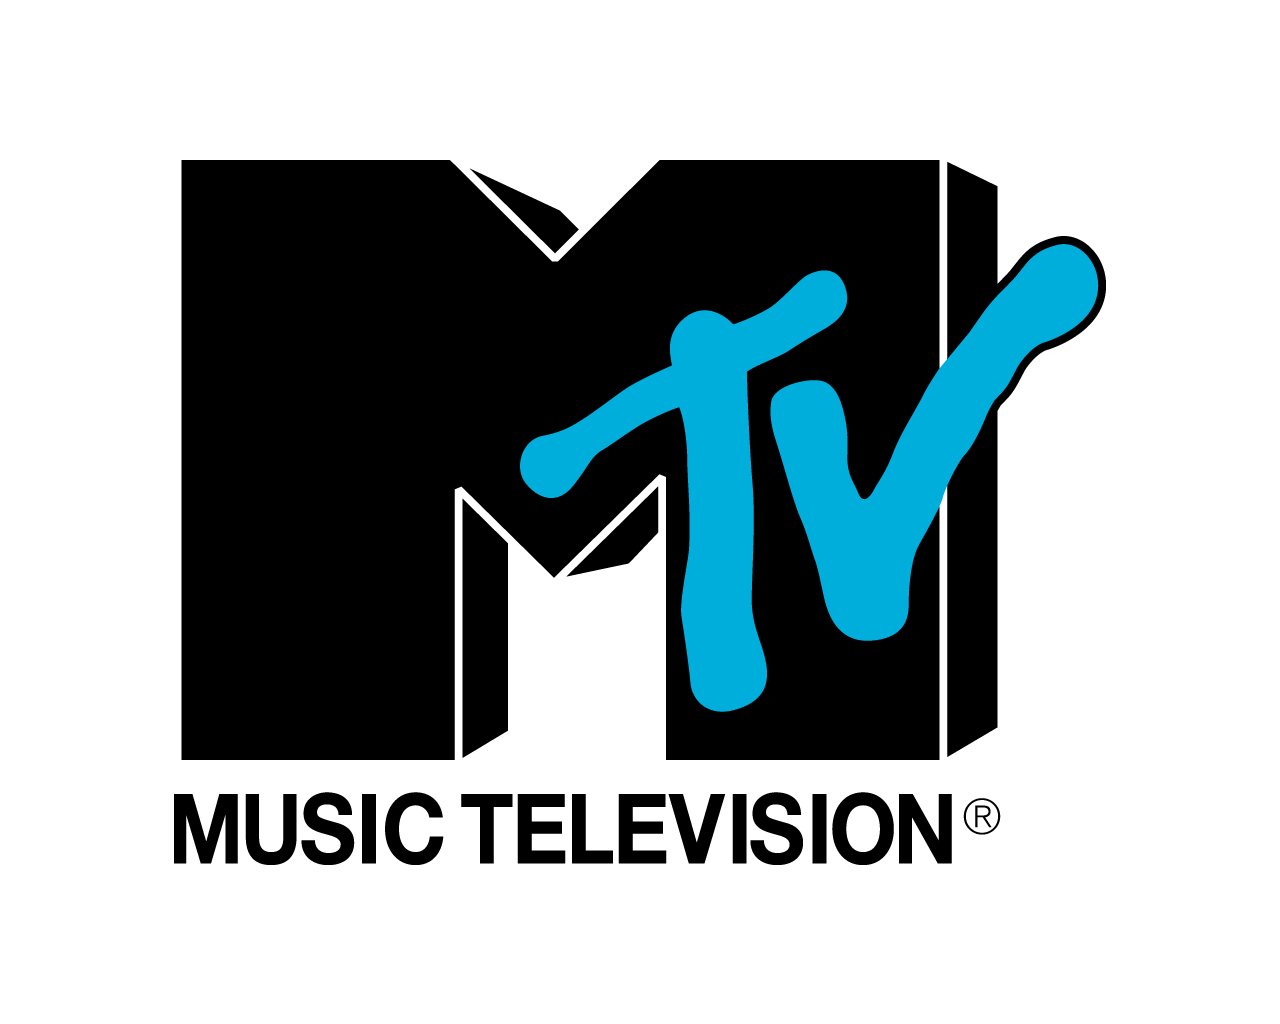 Mtv Logos Hd Full Hd Pictures